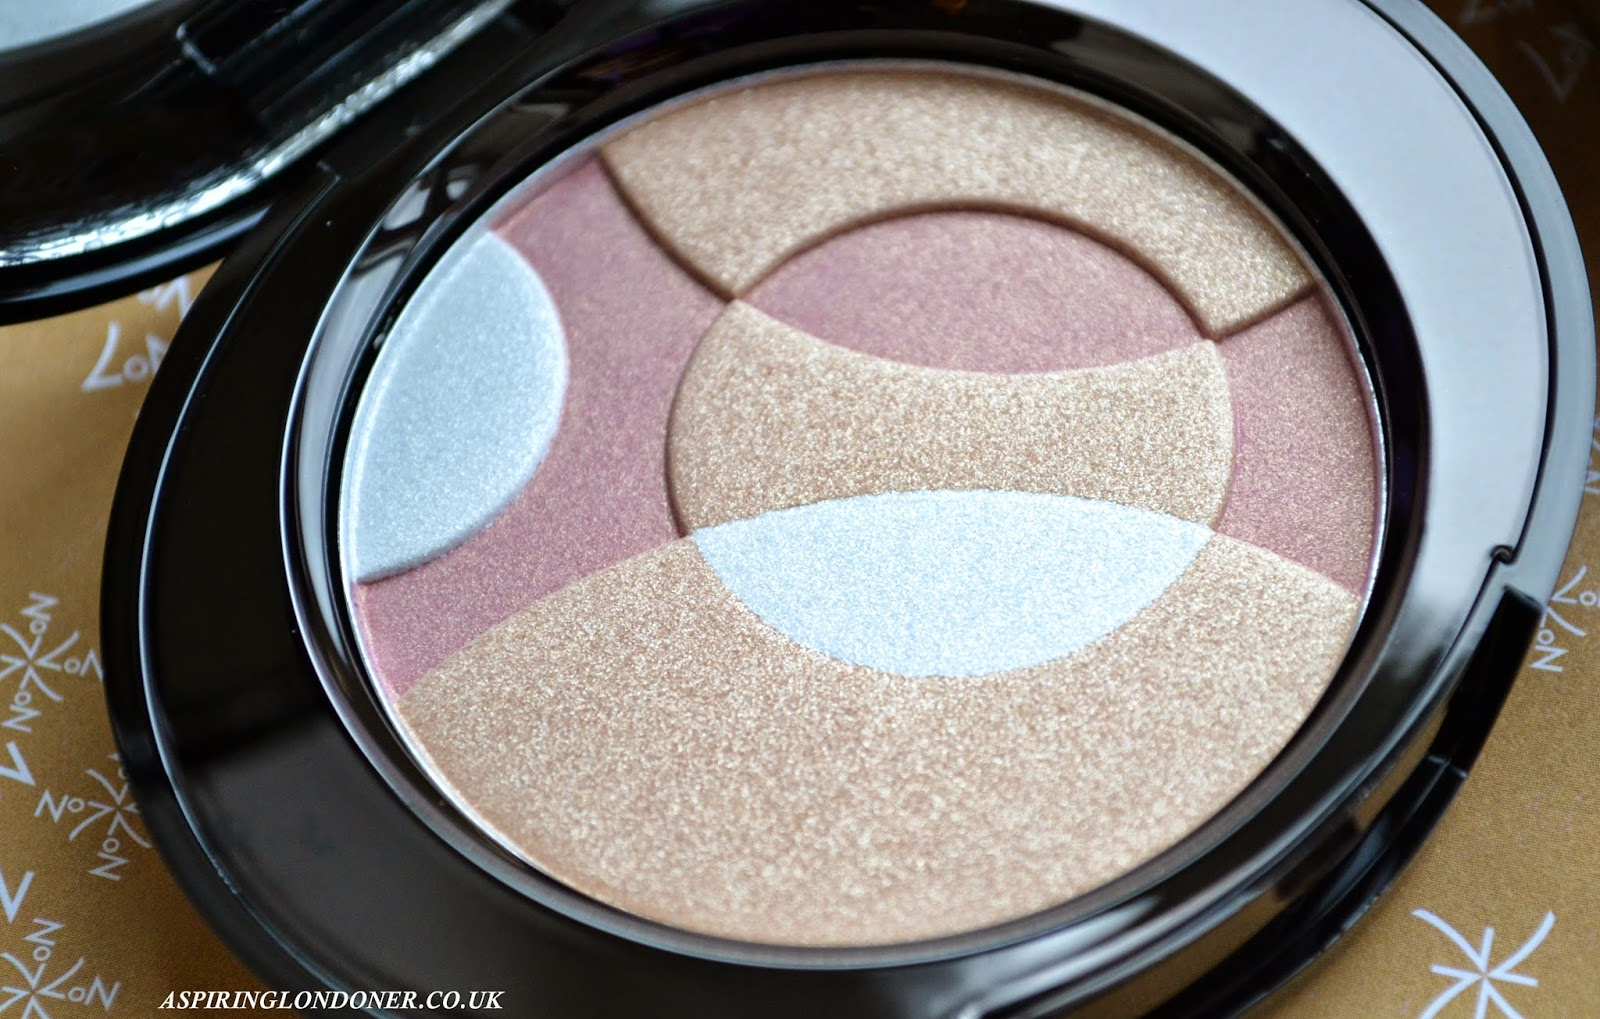 No7 Radiant Spheres Highlighter Review & Swatch - Aspiring Londoner